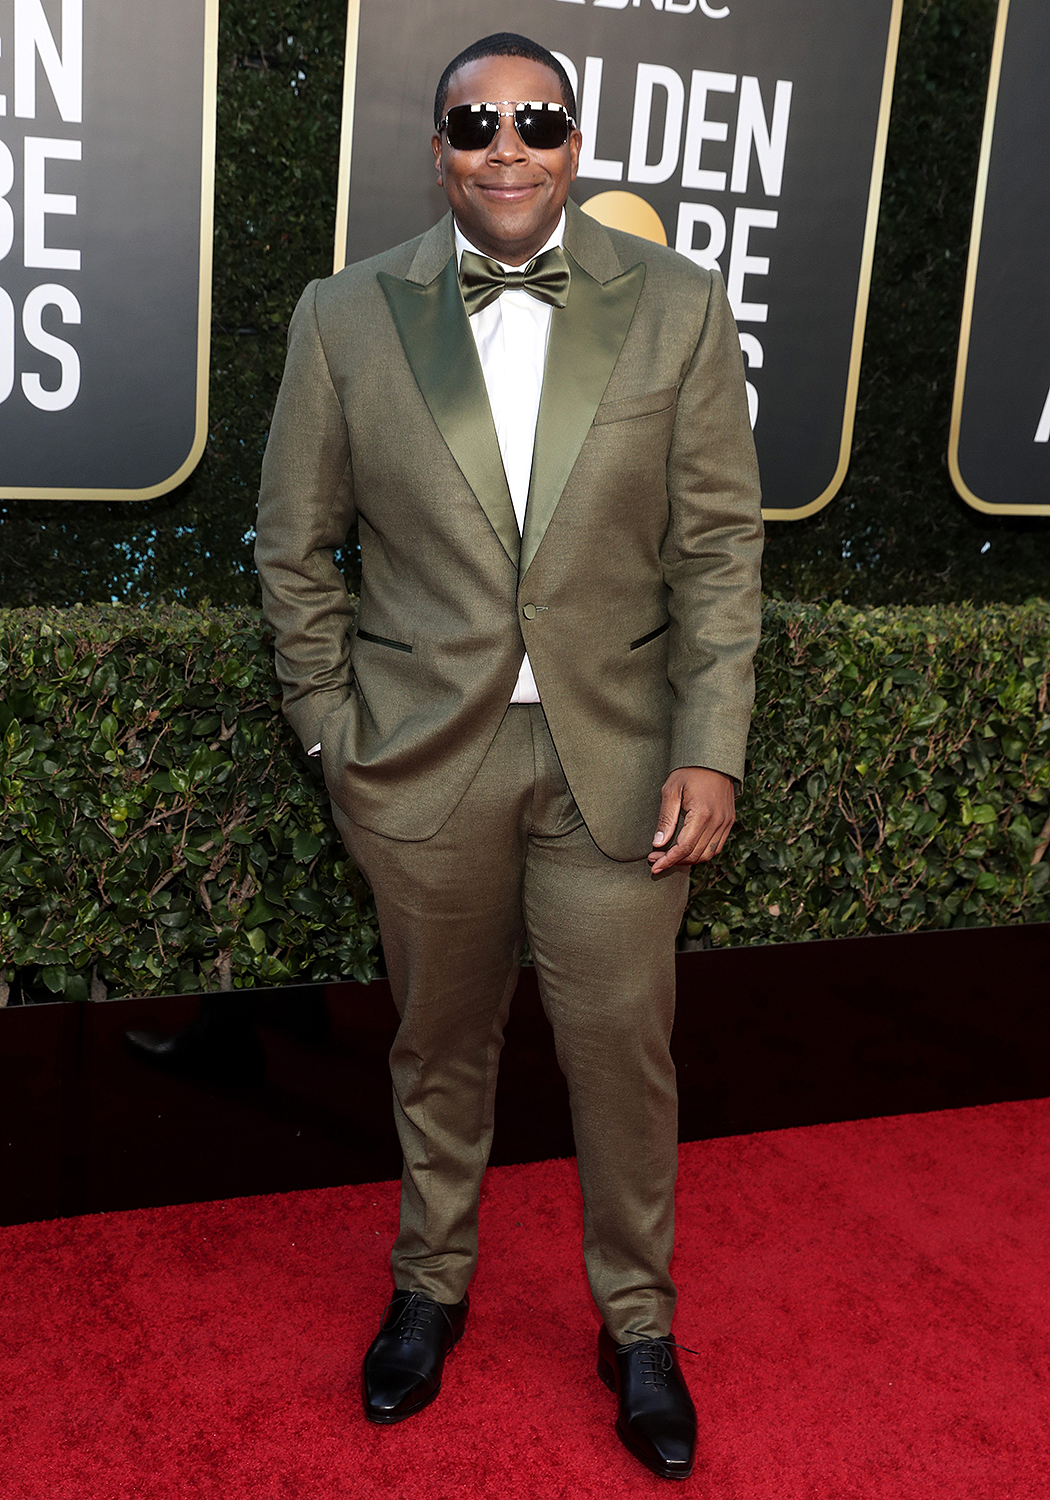 Pictured: Kenan Thompson attends the 78th Annual Golden Globe Awards held at The Beverly Hilton and broadcast on February 28, 2021